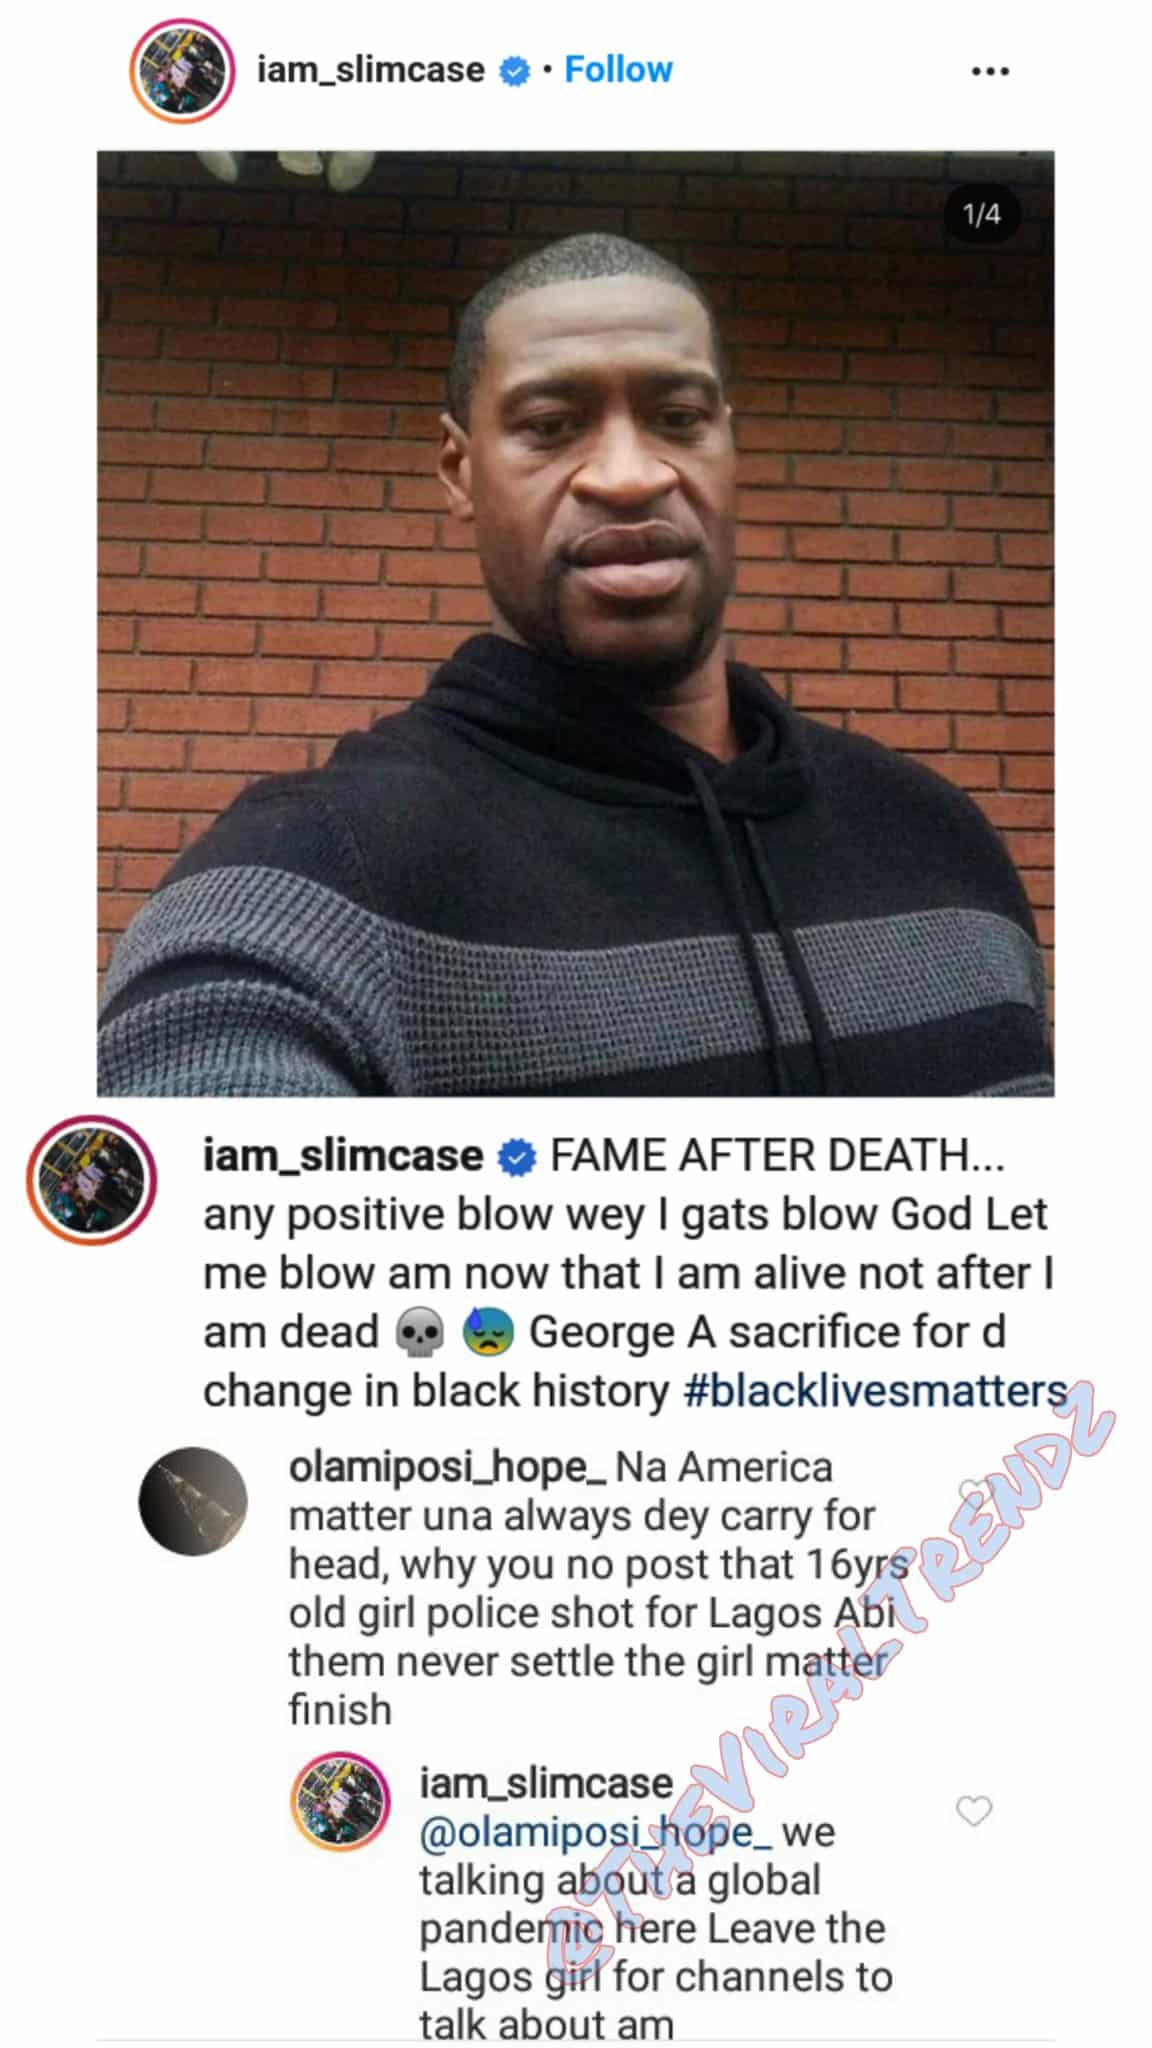 Nigerians attack Slimcase over comments on George Floyd and Tina, Nigerians attack Slimcase over comments on George Floyd and Tina, Latest Nigeria News, Daily Devotionals & Celebrity Gossips - Chidispalace